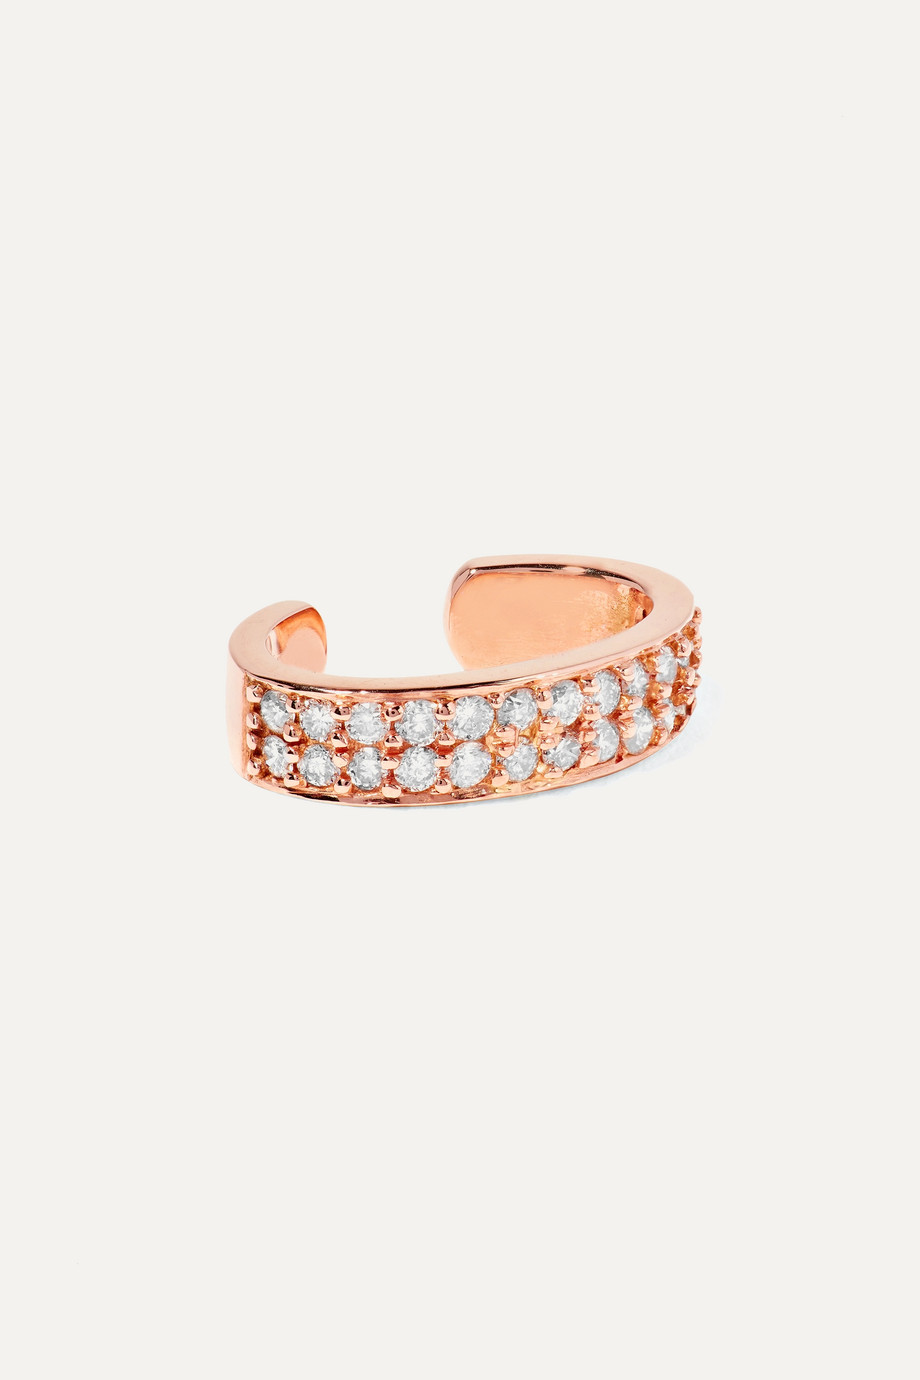 Anita Ko Huggies 18-karat rose gold diamond ear cuff